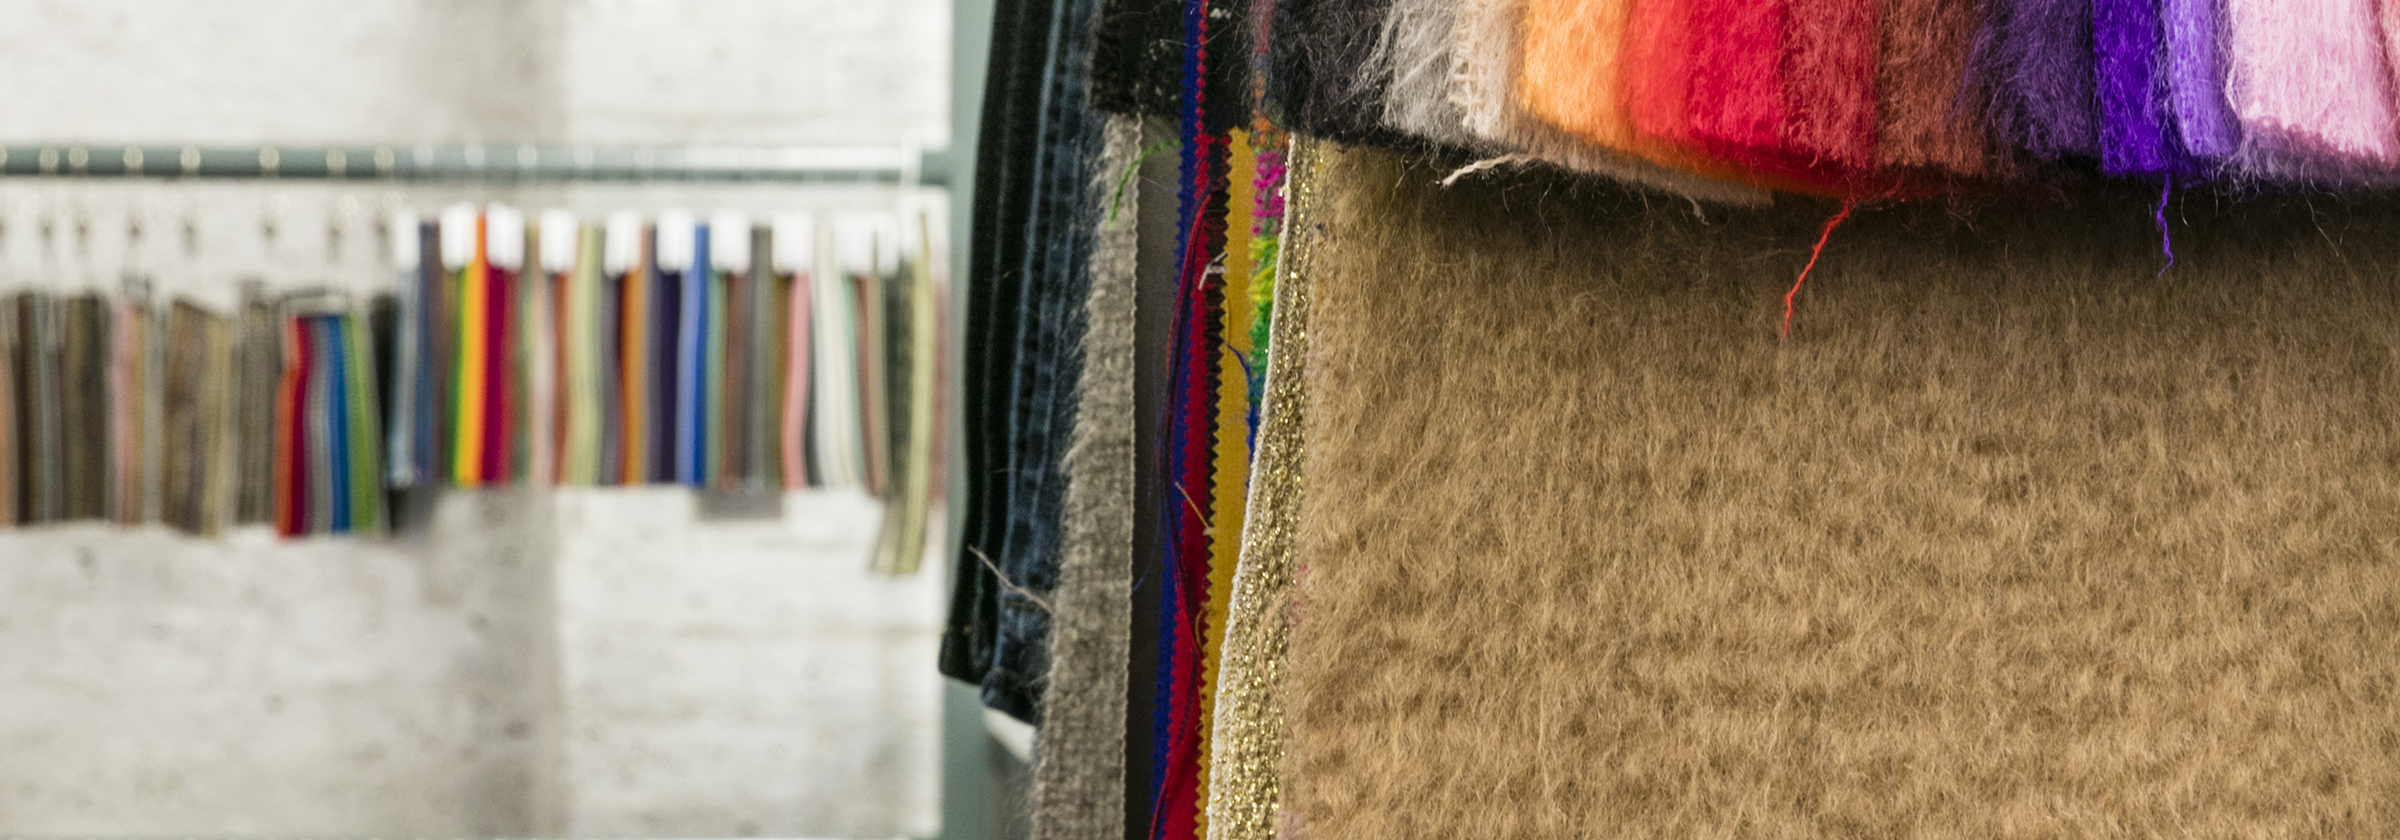 ASOS partners with Centre for Sustainable Fashion for pilot circular design course